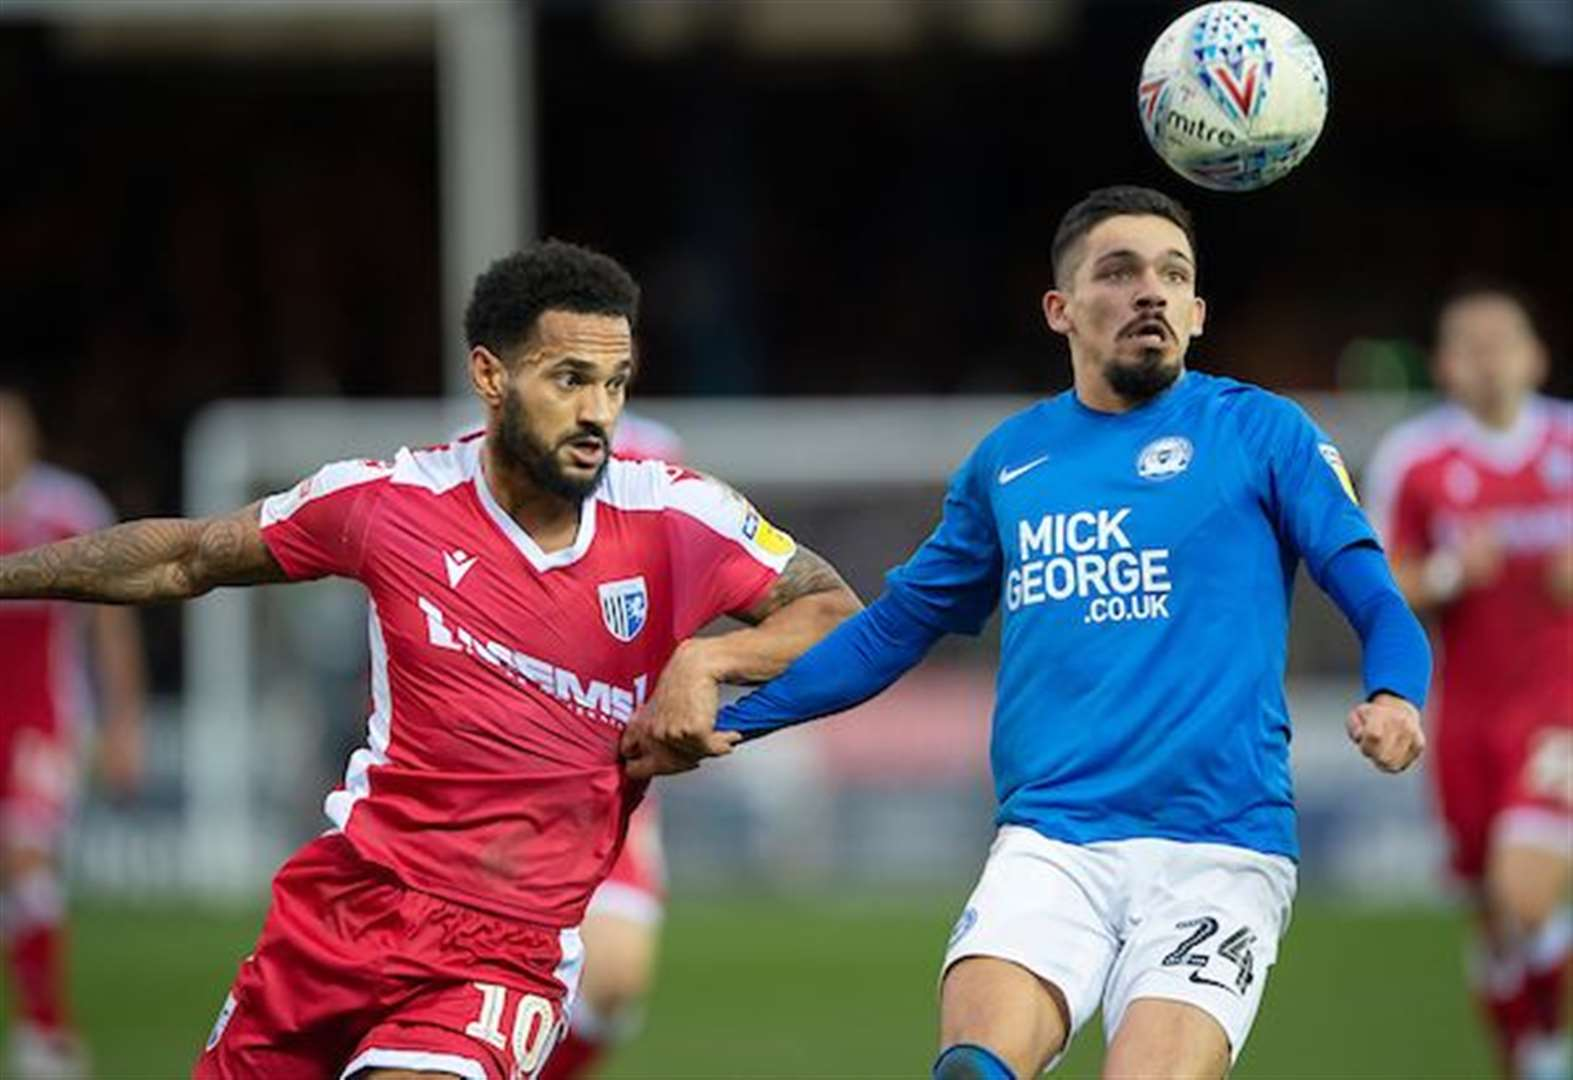 Report: Gills fail to make it count